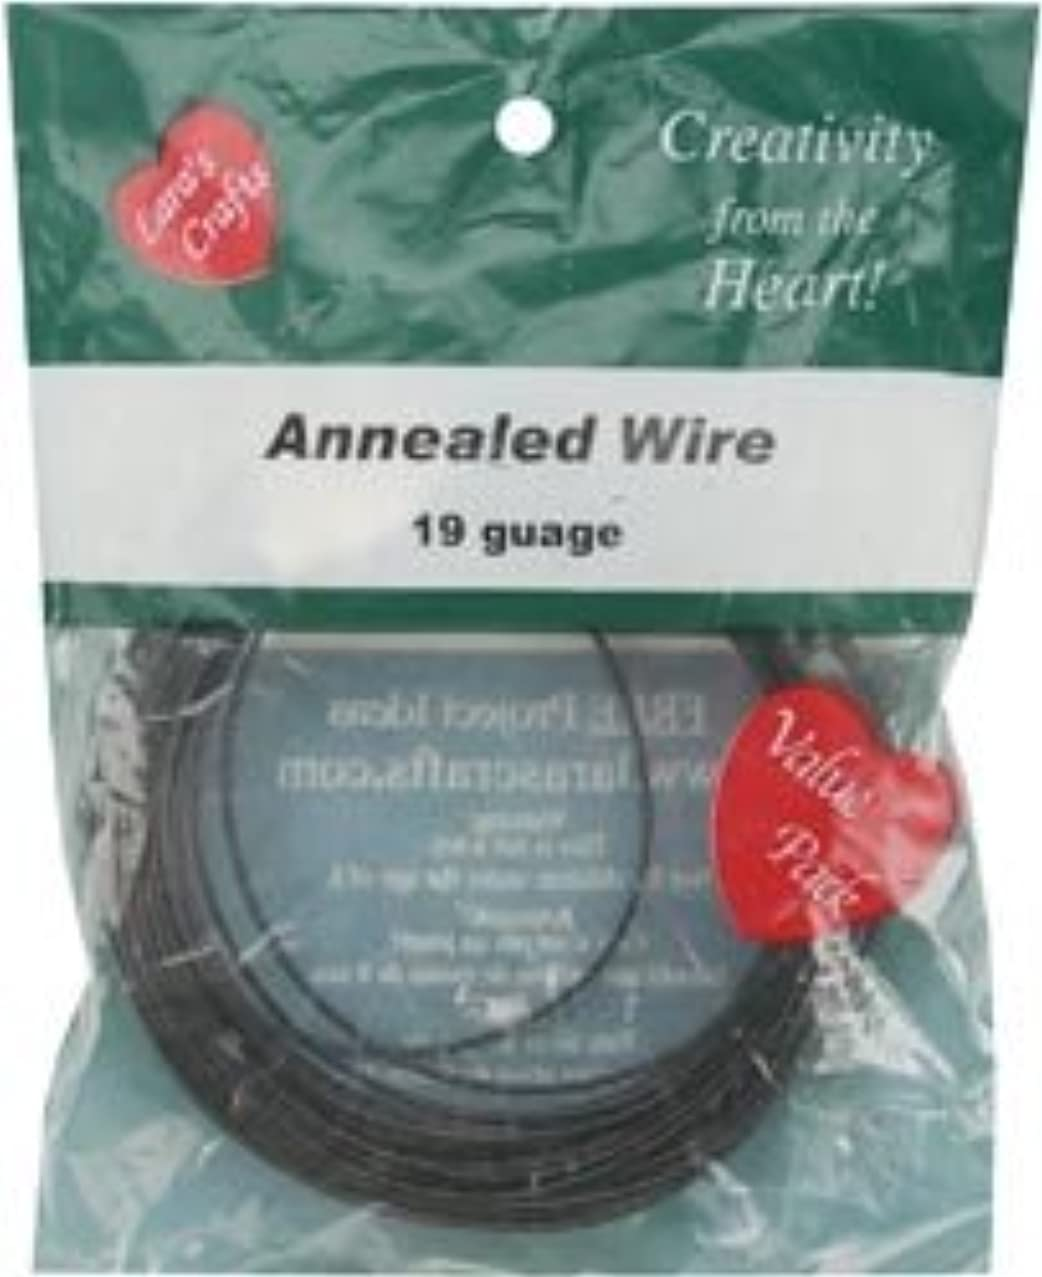 Bulk Buy: The New Image Group Dark Annealed Wire 19 Gauge 50in. Coil LKWIRE (6-Pack)